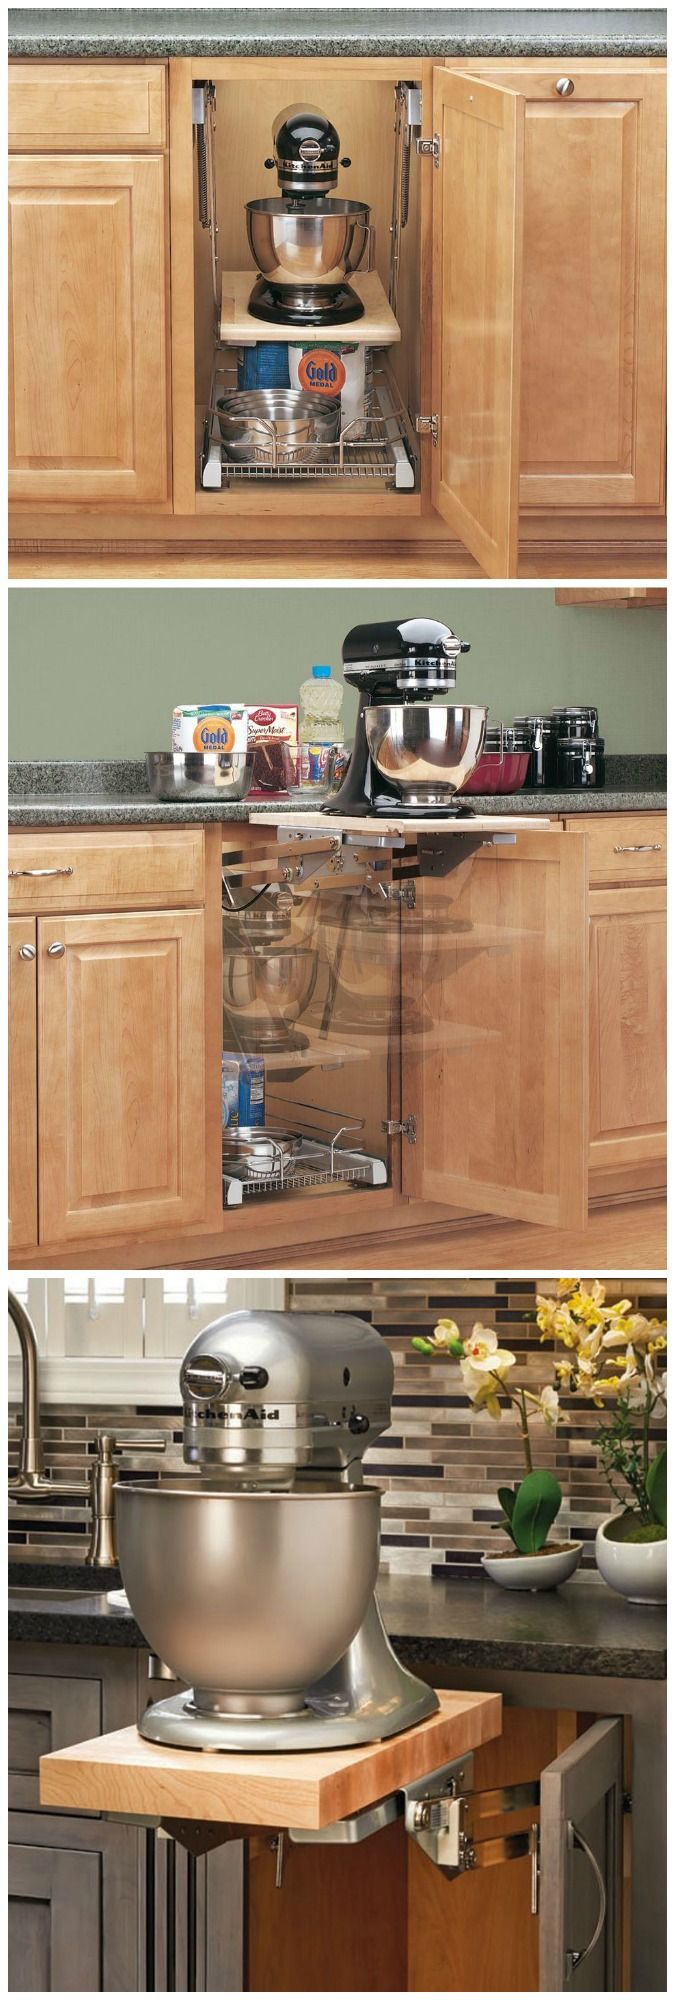 Kitchen cabinet tremendous corner base sink cabinet with half moon - Rev A Shelf Appliance Lift Unique Storage Solution For Your Heavy Duty Appliances